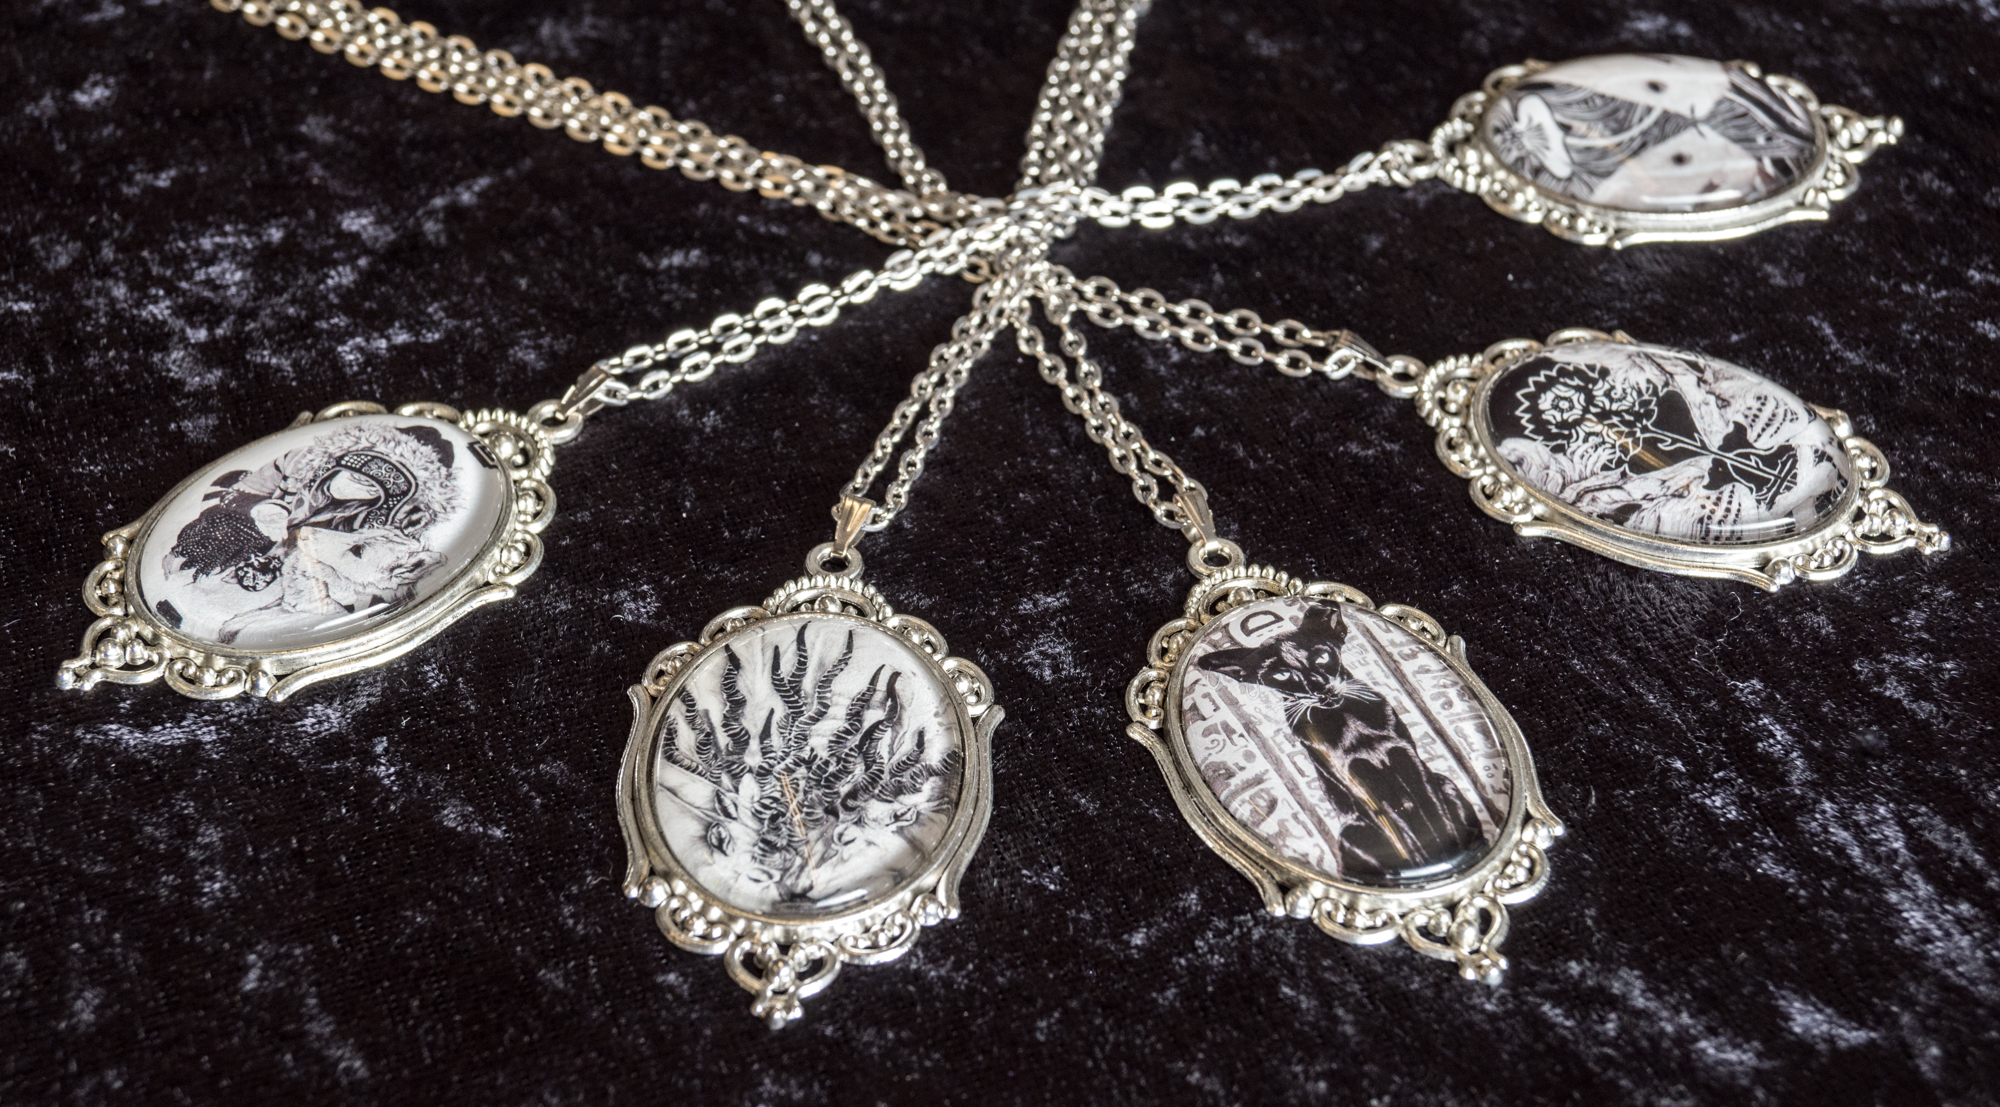 necklaces - Necklaces are made to order! They can be put in an ornate or simple setting and come in a gift box.